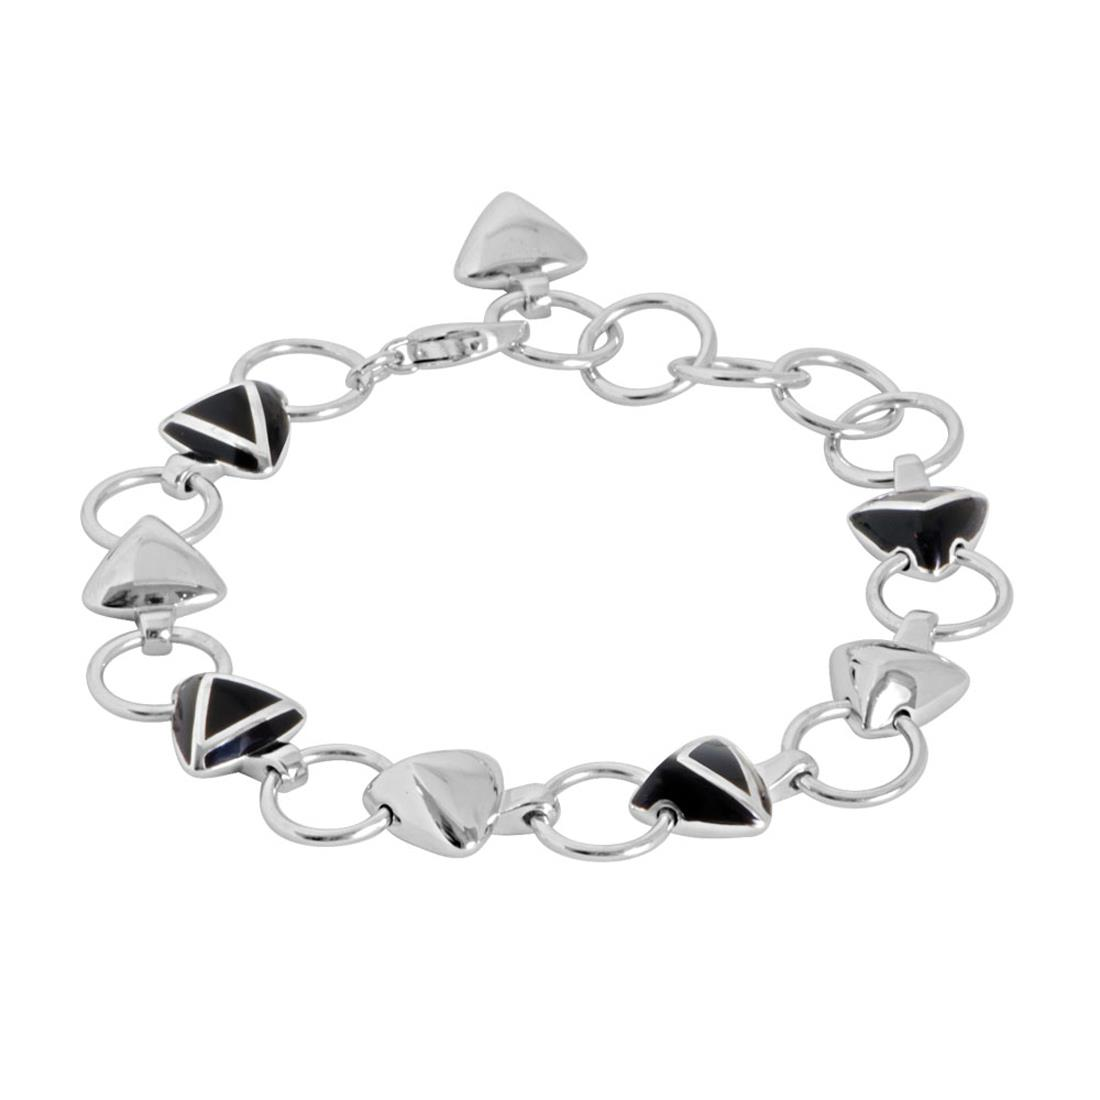 Sterling silver BRACELET with black enamel, 20 cm lenght